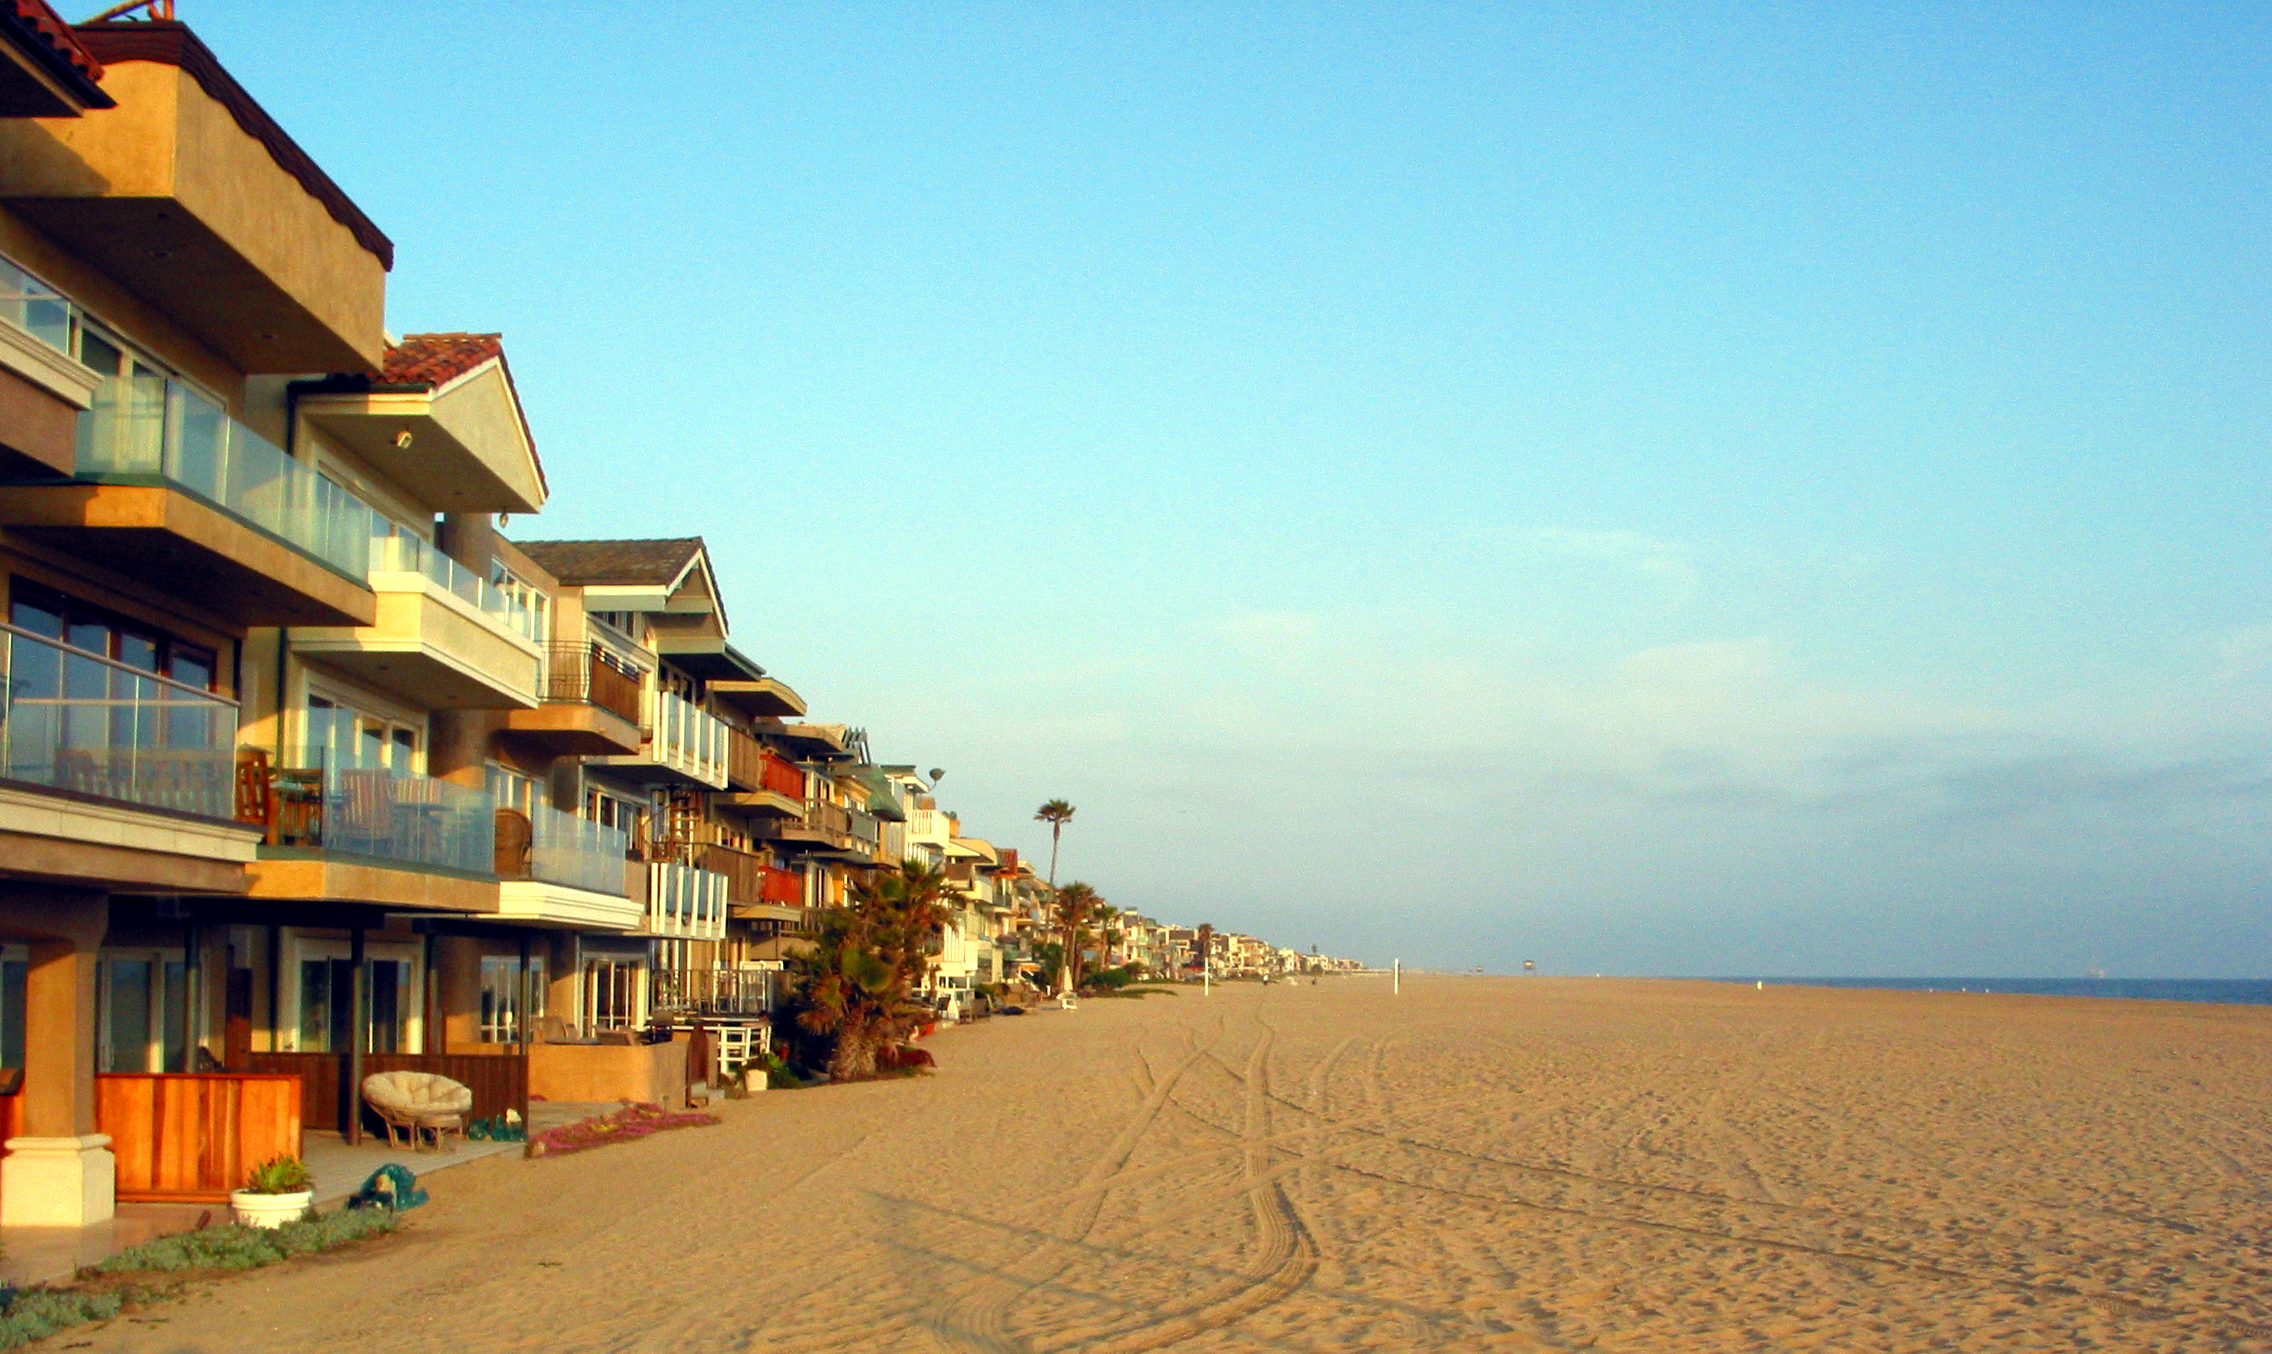 Groovy Surfside California Wikipedia Download Free Architecture Designs Sospemadebymaigaardcom